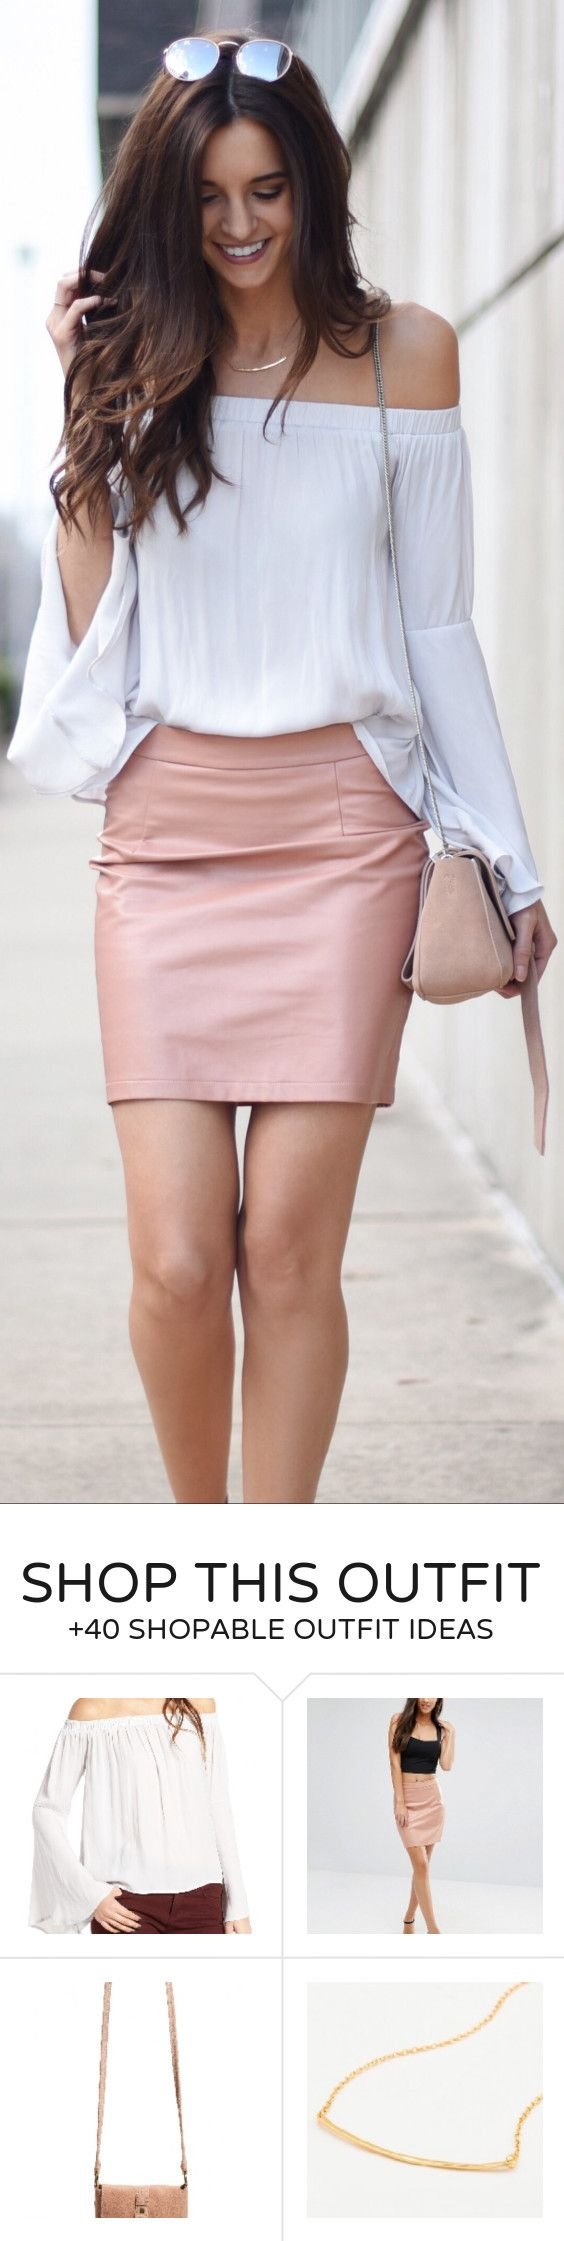 #spring #fashion /  White Off Shoulder Top / Pink Leather Skirt / Beige Bag